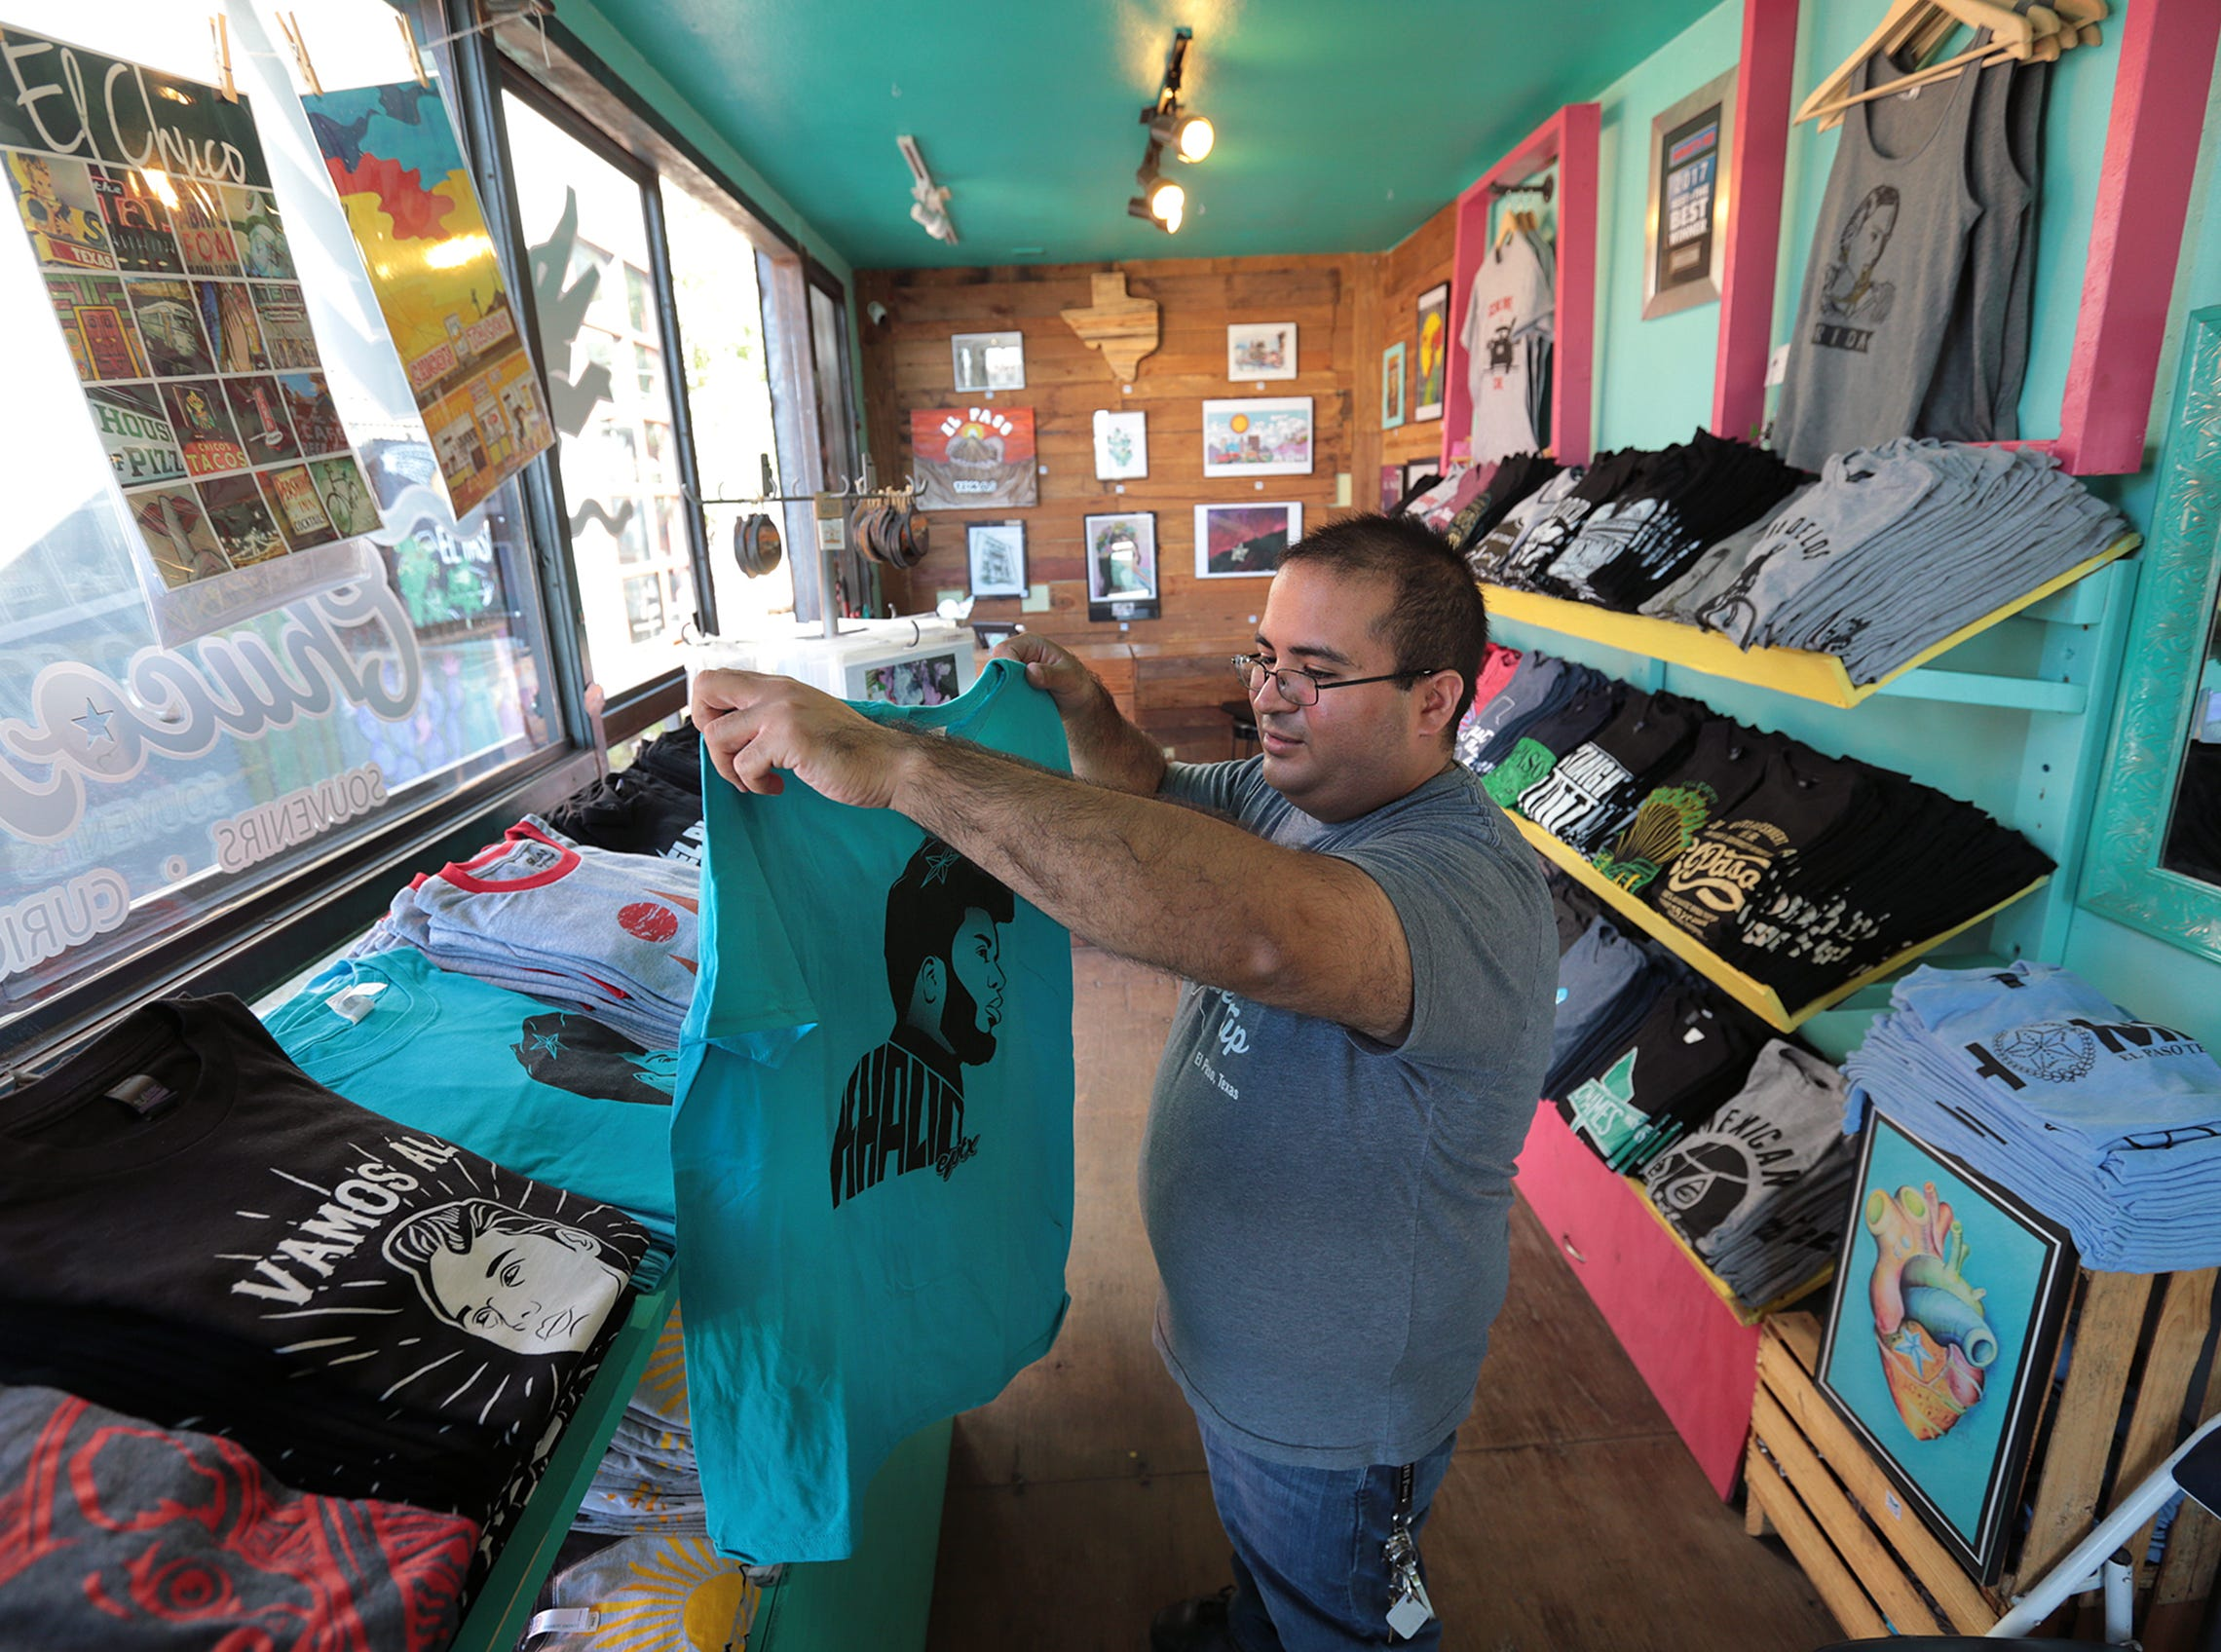 Chuco Relic manager Andrew Candelaria shows the Khalid t-shirt sold at the store at Time at Montecillo. The shirts have been selling well with the upcoming concert.